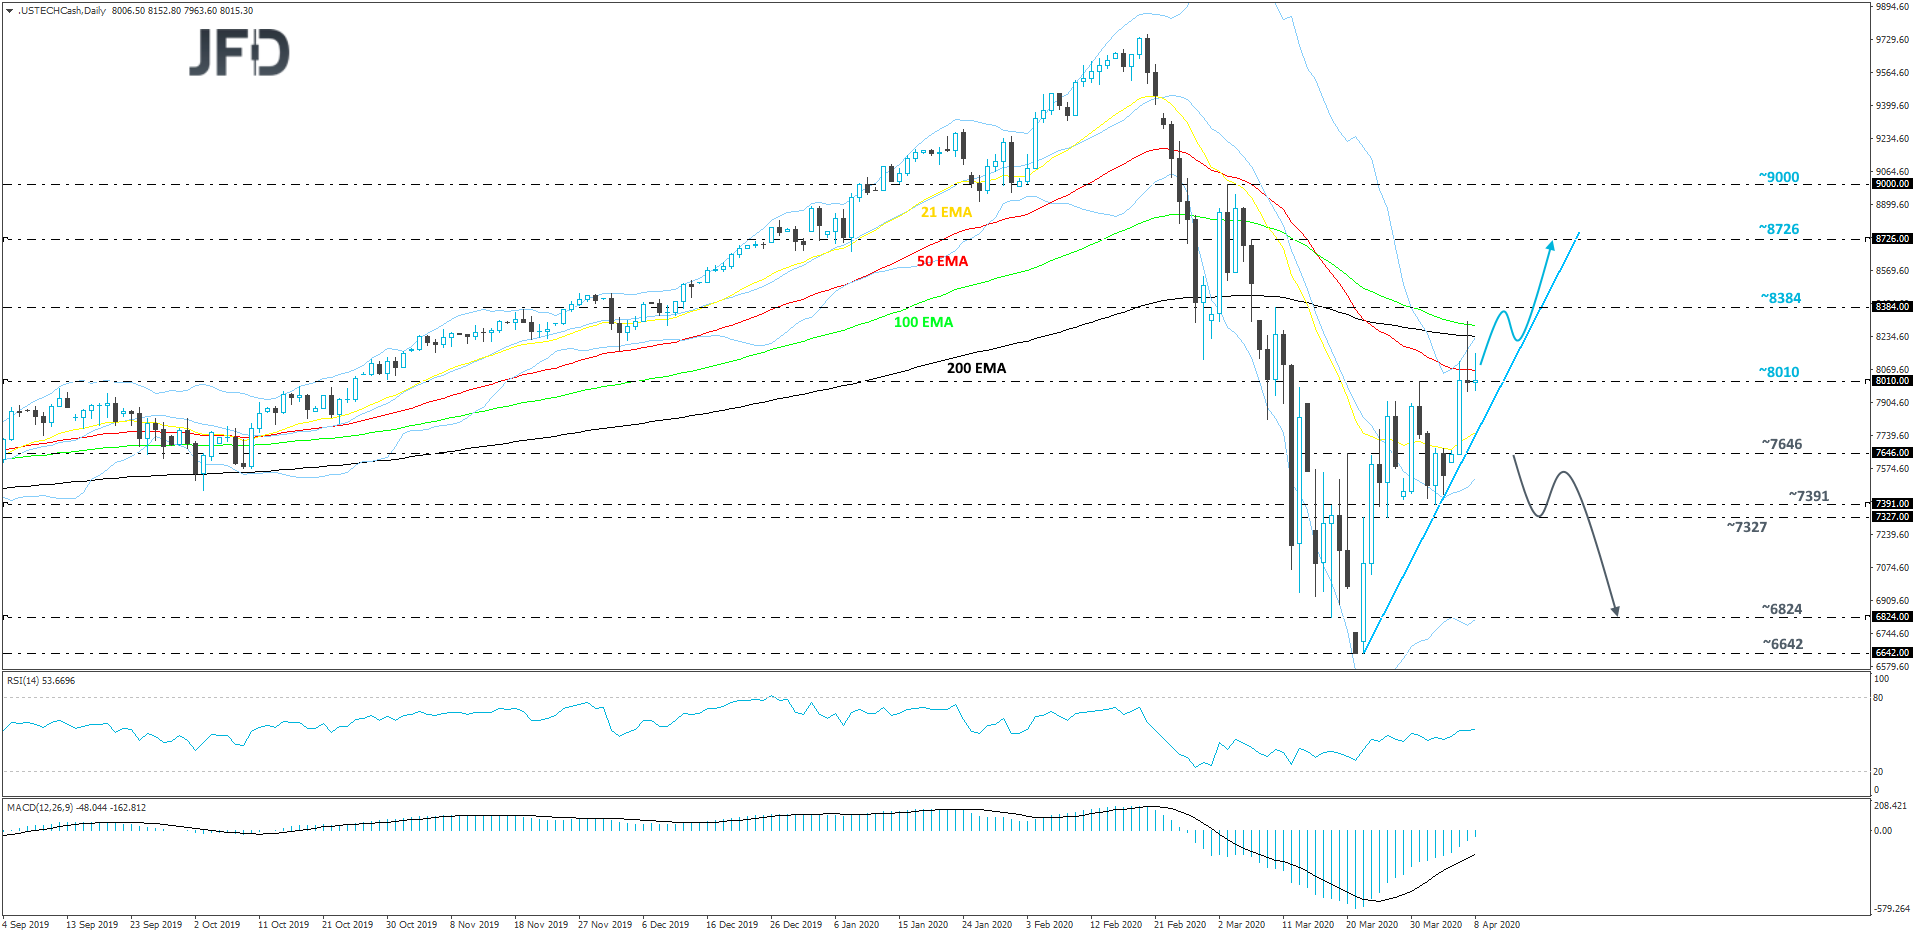 Nasdaq 100 cash index daily chart technical analysis